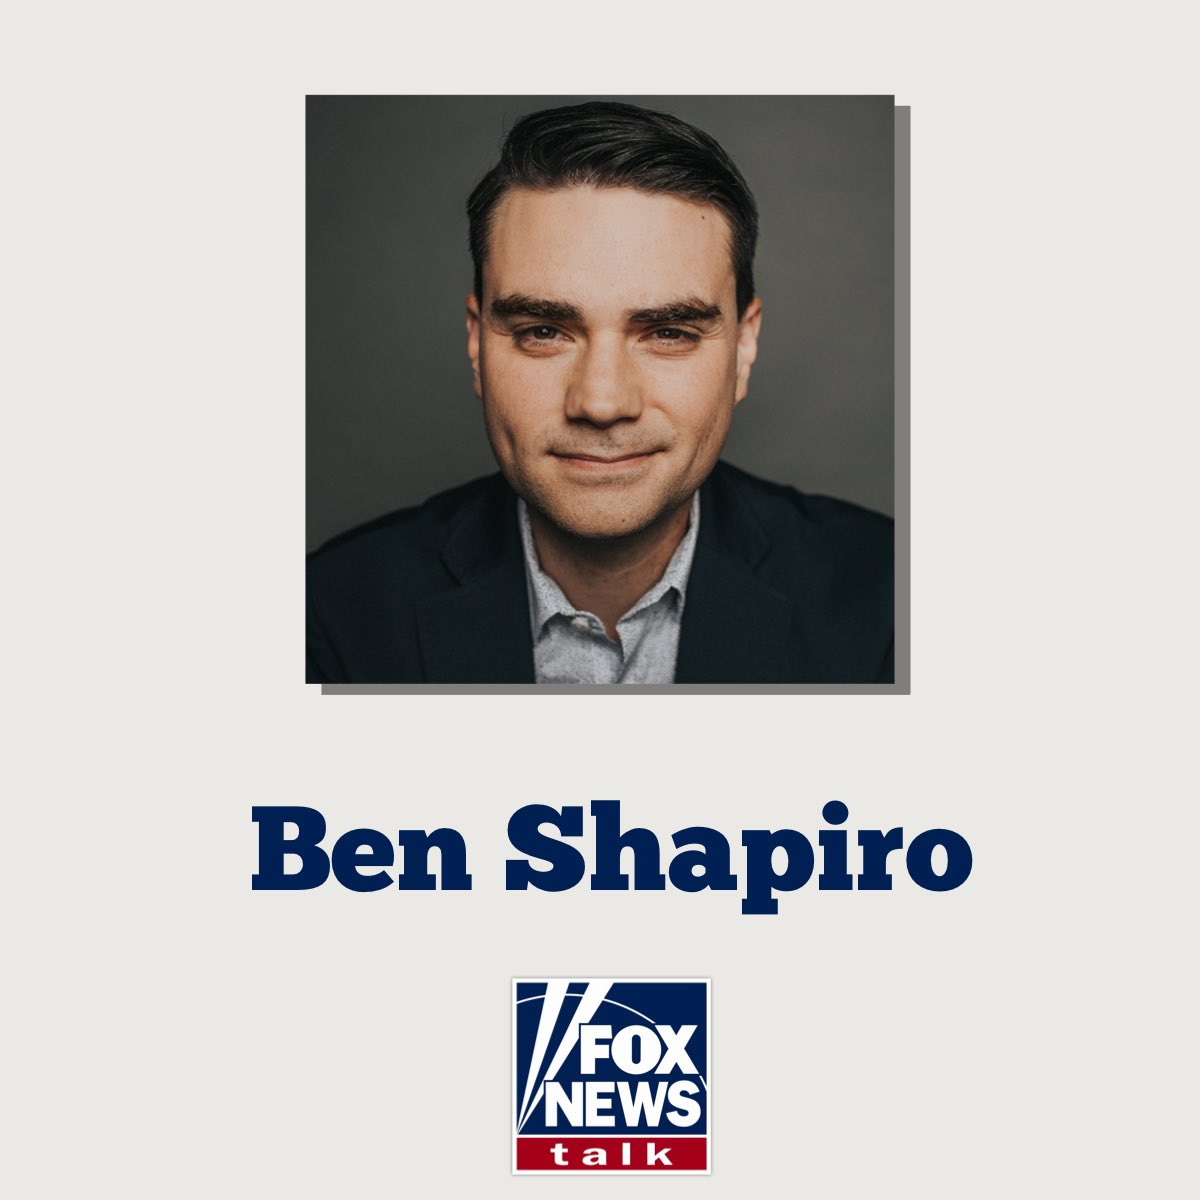 Looking forward to chatting with @benshapiro today on the @GuyBensonShow 🎙🇺🇸